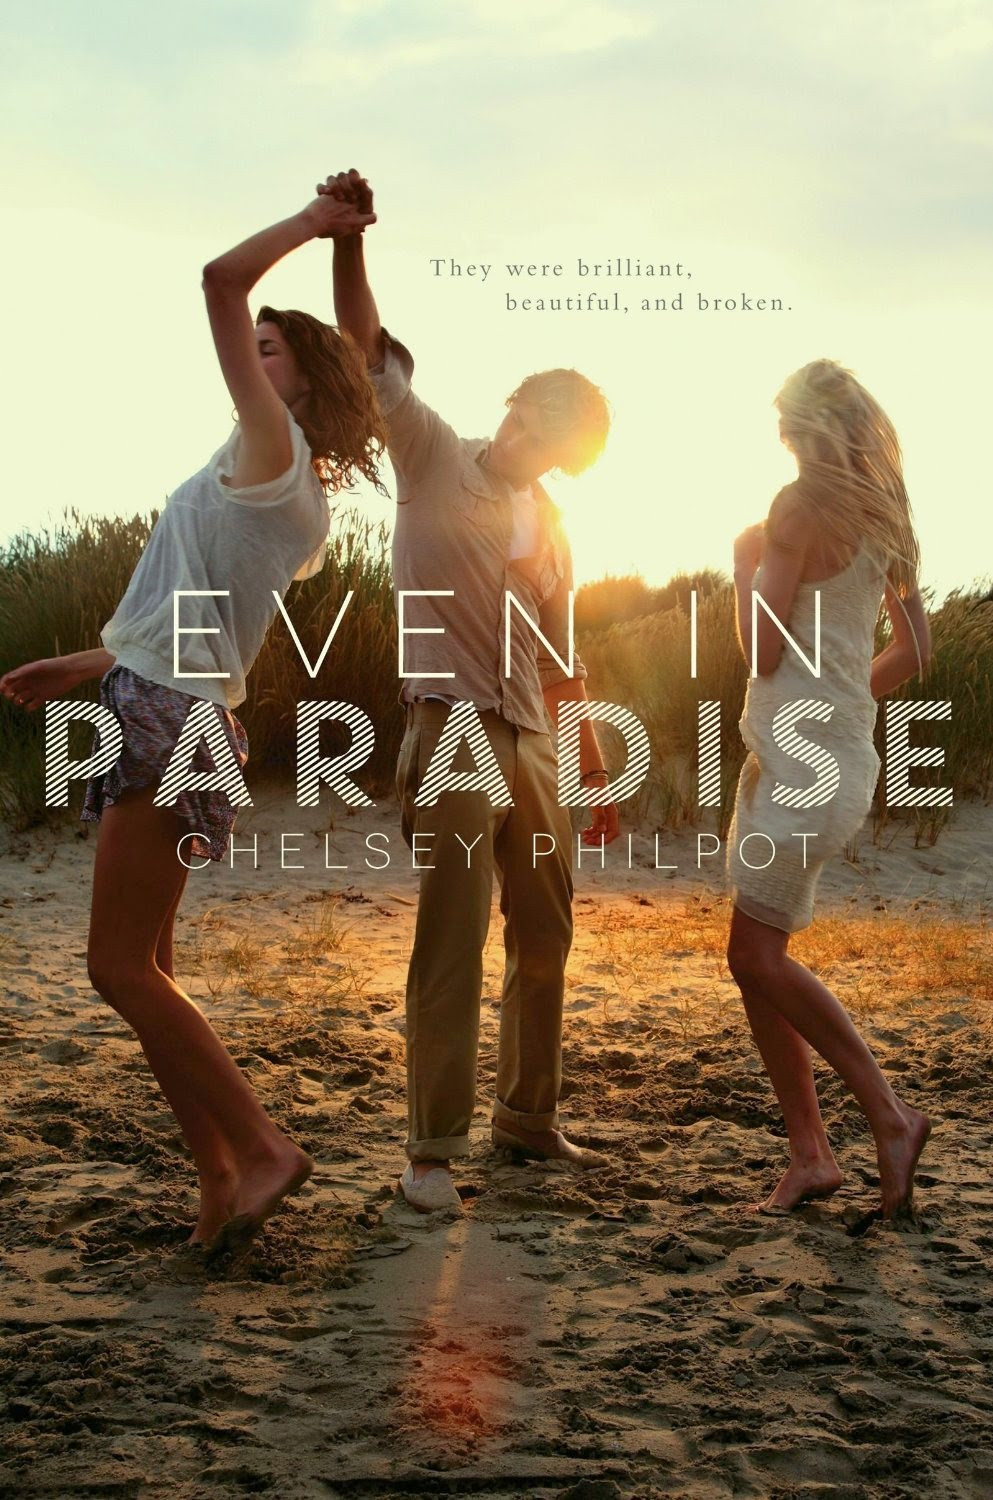 Even in Paradise (Chelsey Philpot).jpg